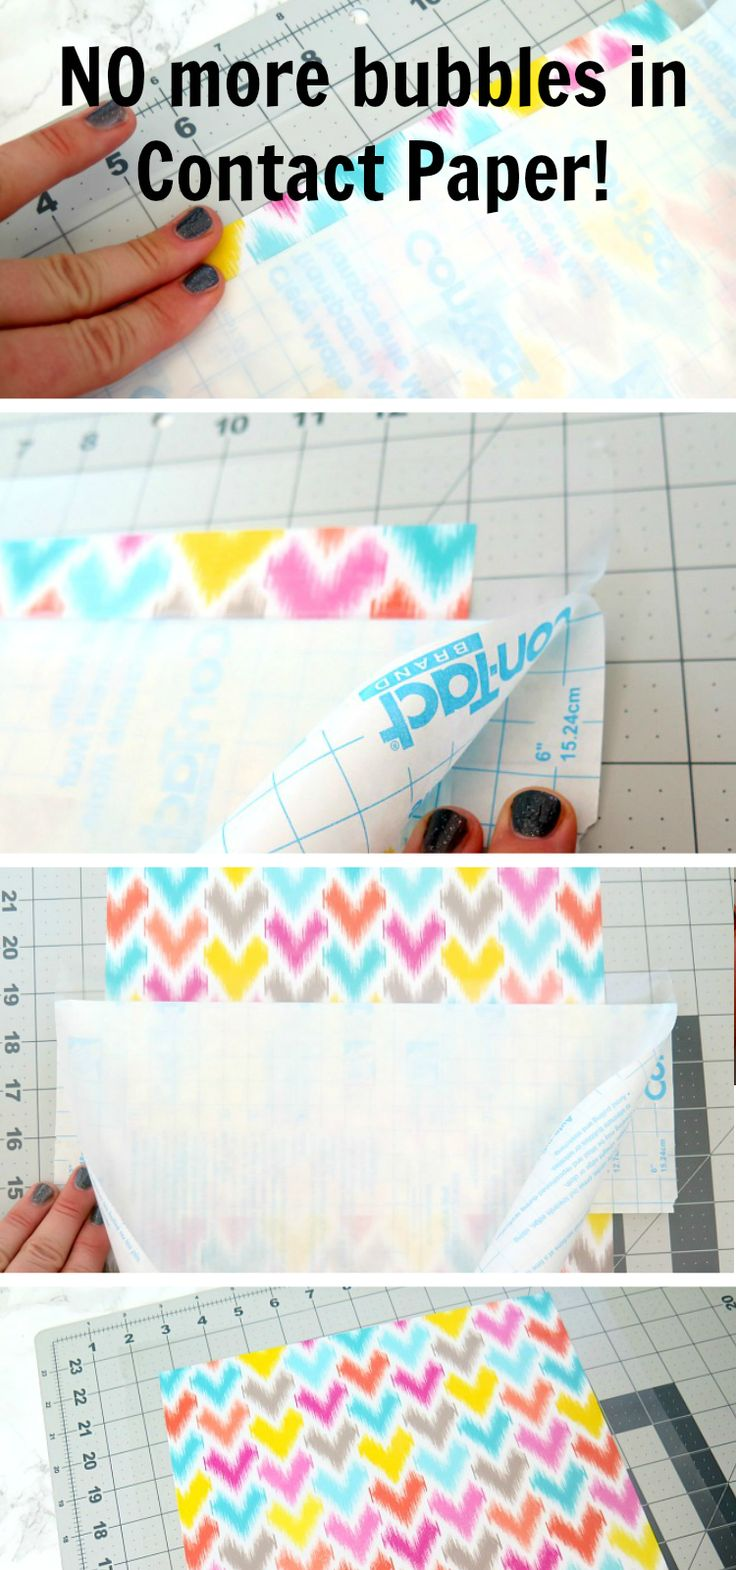 Why didn't I think of this? BRILLIANT! Pinning for later. Finally, how to avoid bubbles and crinkles in contact paper!